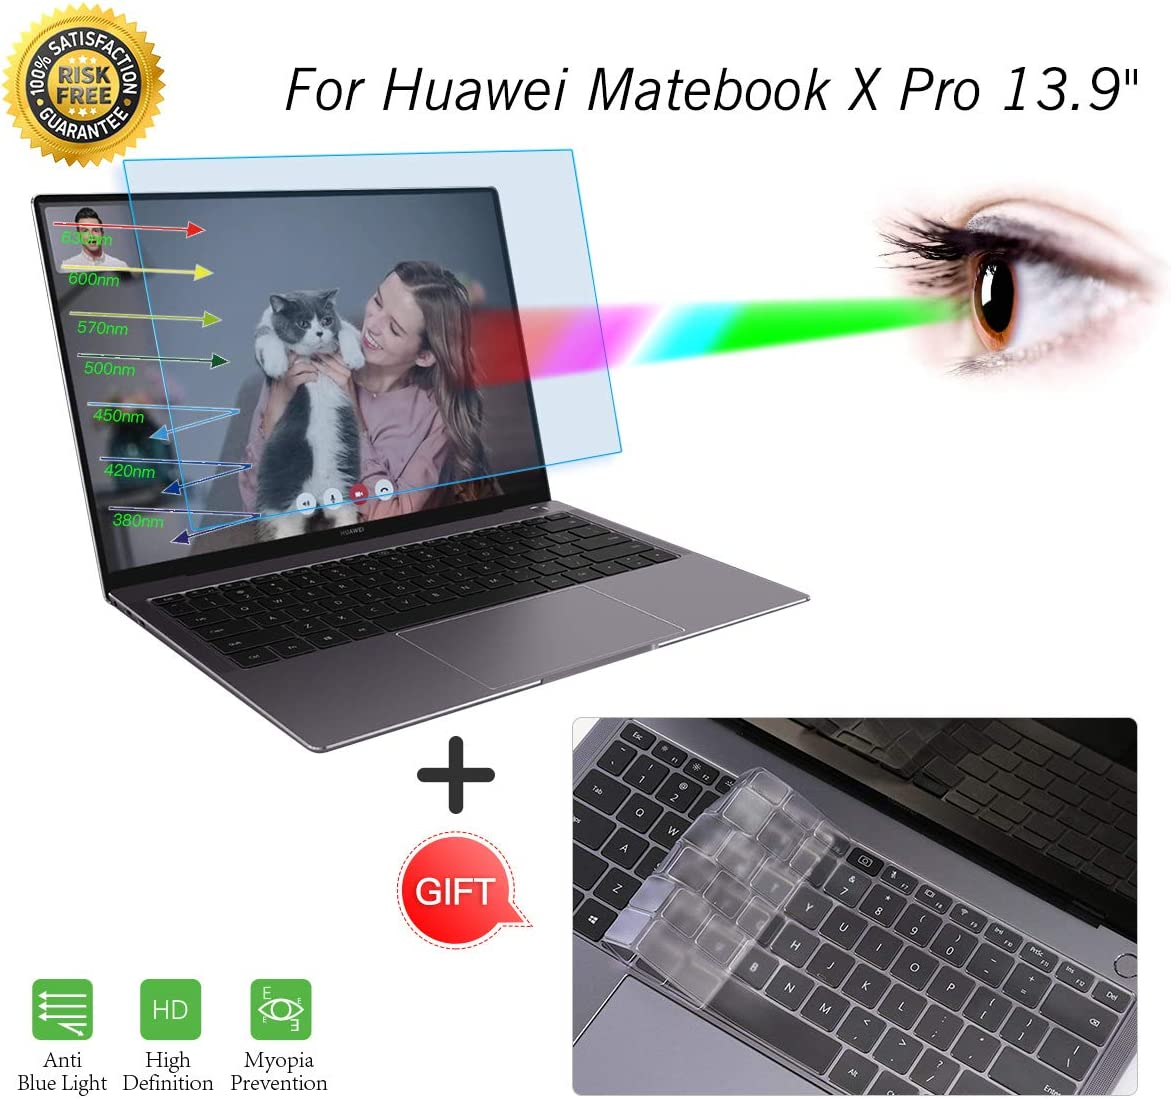 YOUPECK Laptop Screen Protector for Huawei MateBook X 2-Pack Computer Guard Film for Huawei MateBook X 13.3 inch Laptop HD Crystal Clear Screen Protector